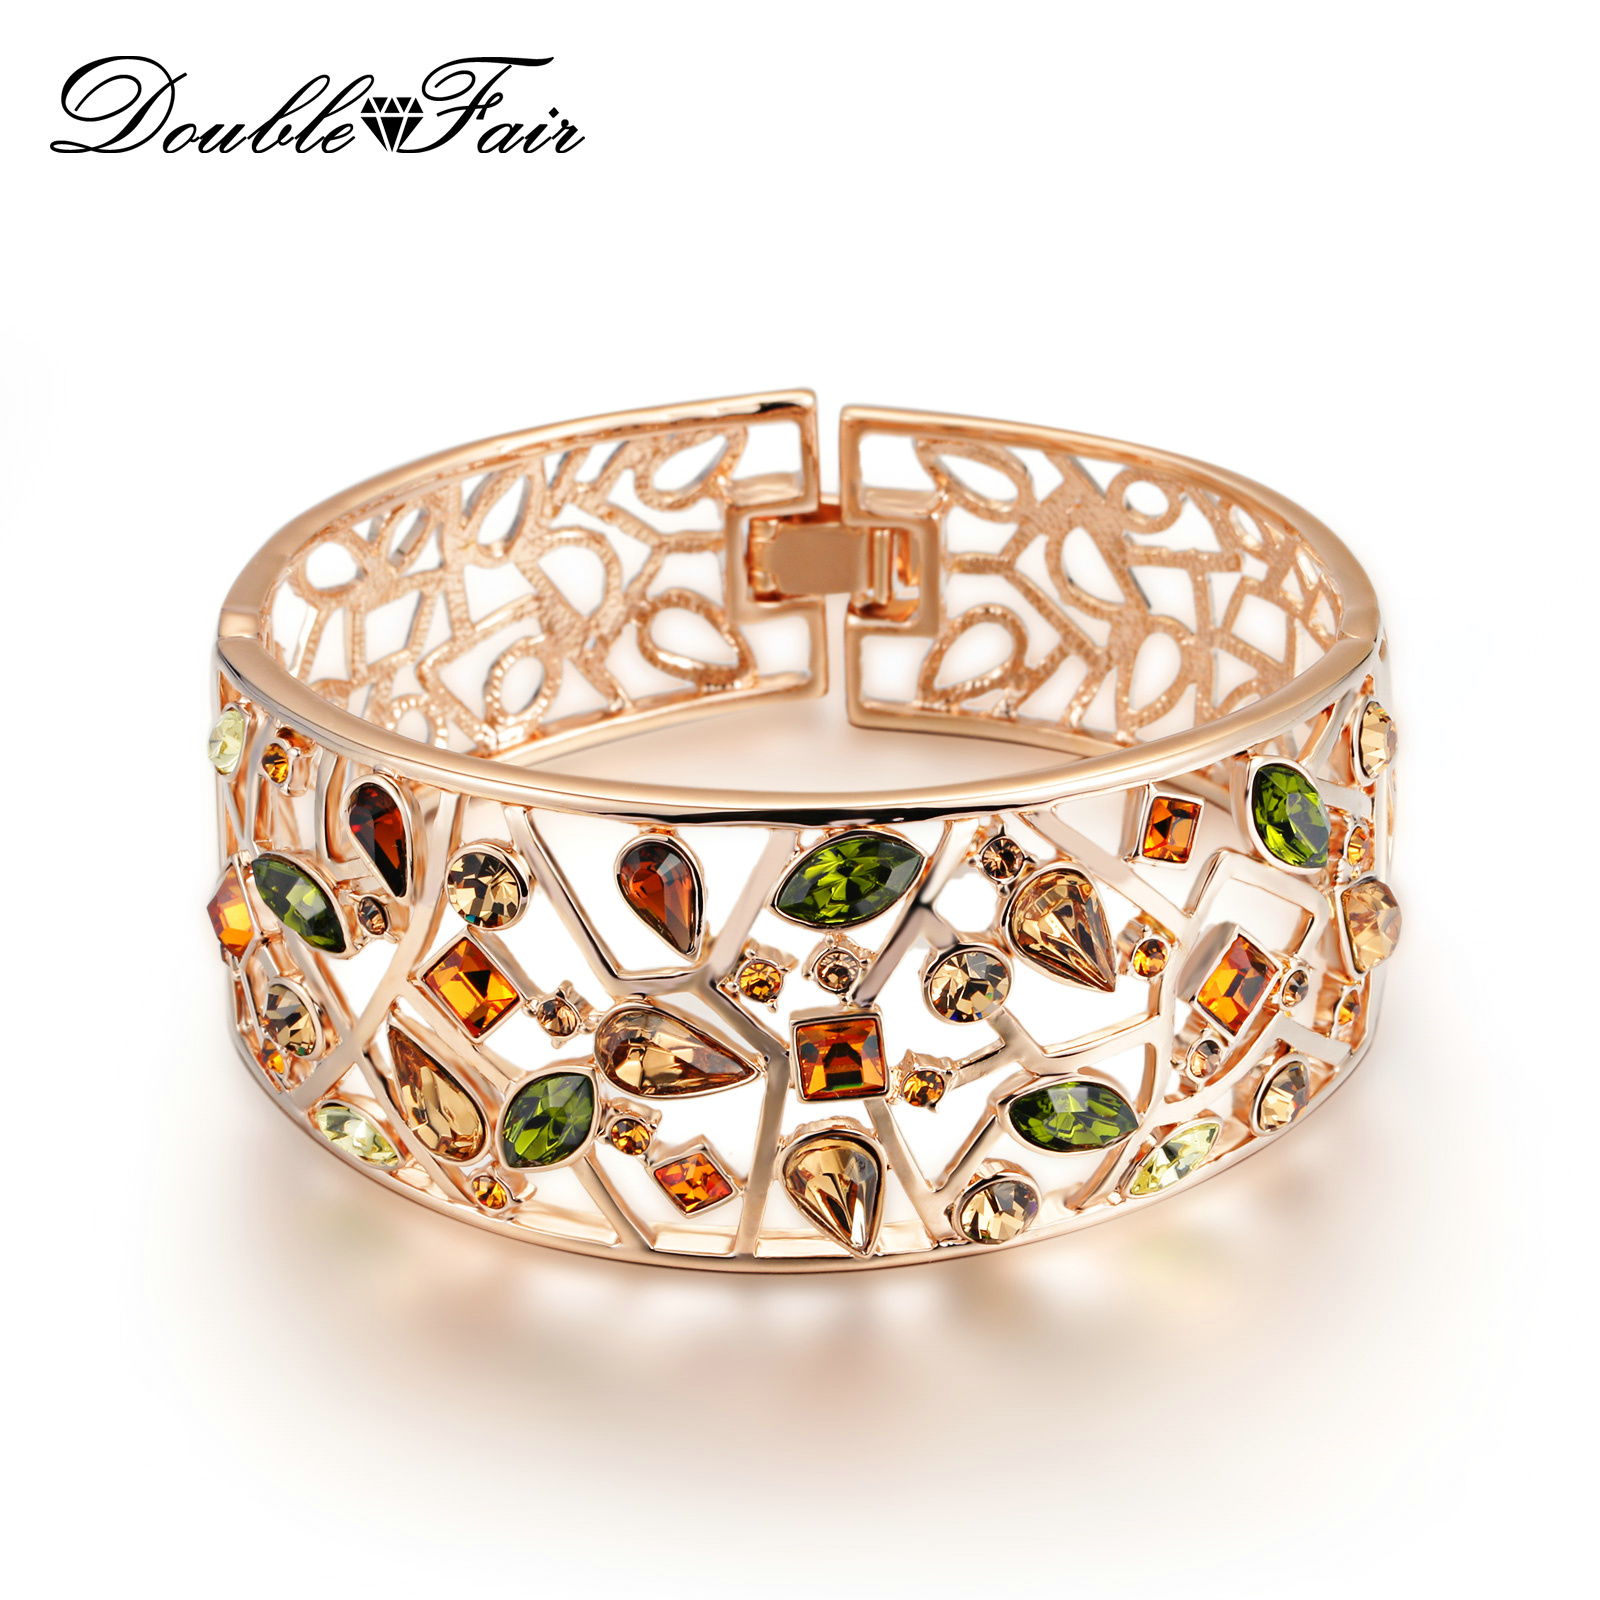 Multicolor Austria Crystal Big Hollow Bracelets & Bangles Rose Gold Color Fashion Rhinestone Jewelry For Women DFB007 a suit of cute rhinestone elephants alloy bracelets for women